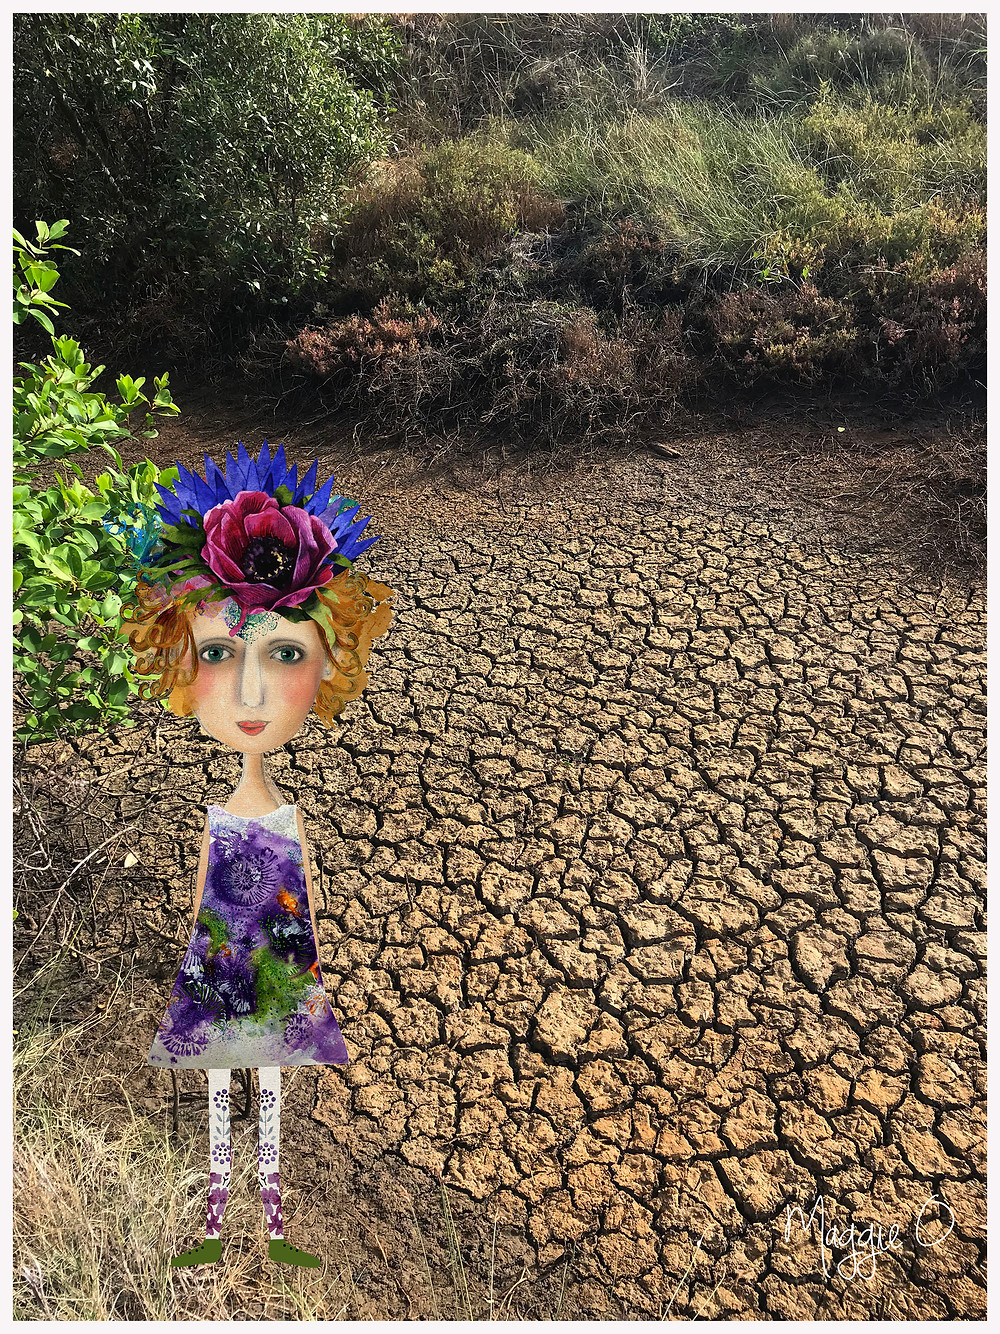 Elly Rose standing on cracked mud